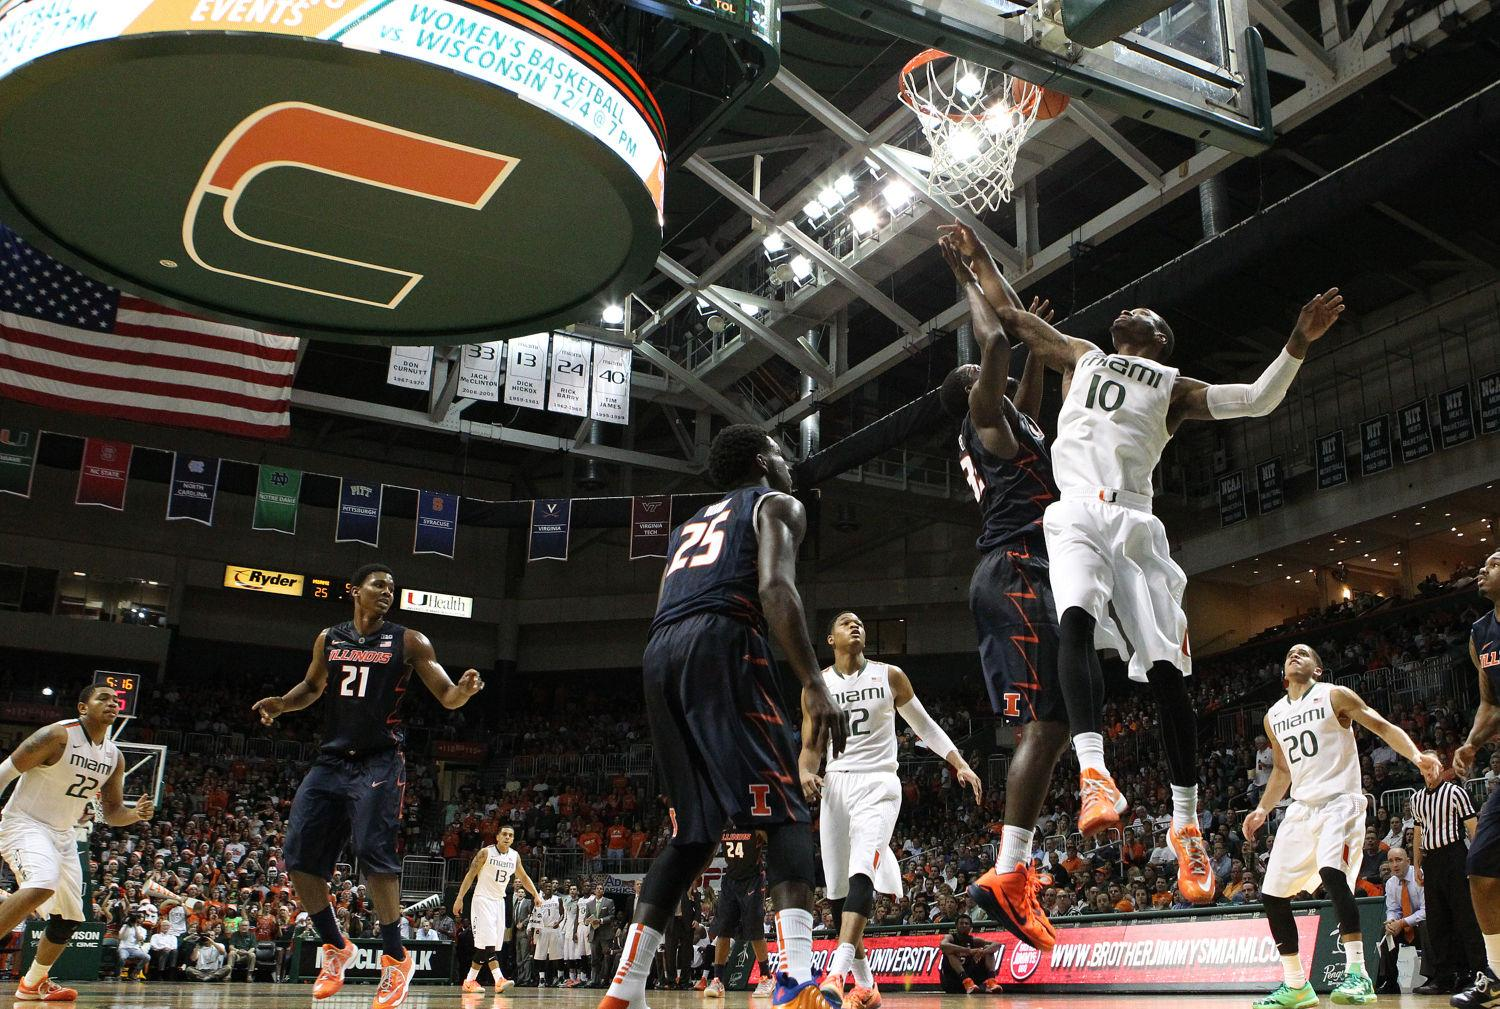 Miami's Sheldon McClellan goes to the basket to score in the first half against Illinois in Coral Gables, Florida, on Tuesday. The Hurricanes won, 70-61. The Illini's shooting percentage was their season-worst at 33.3 percent.